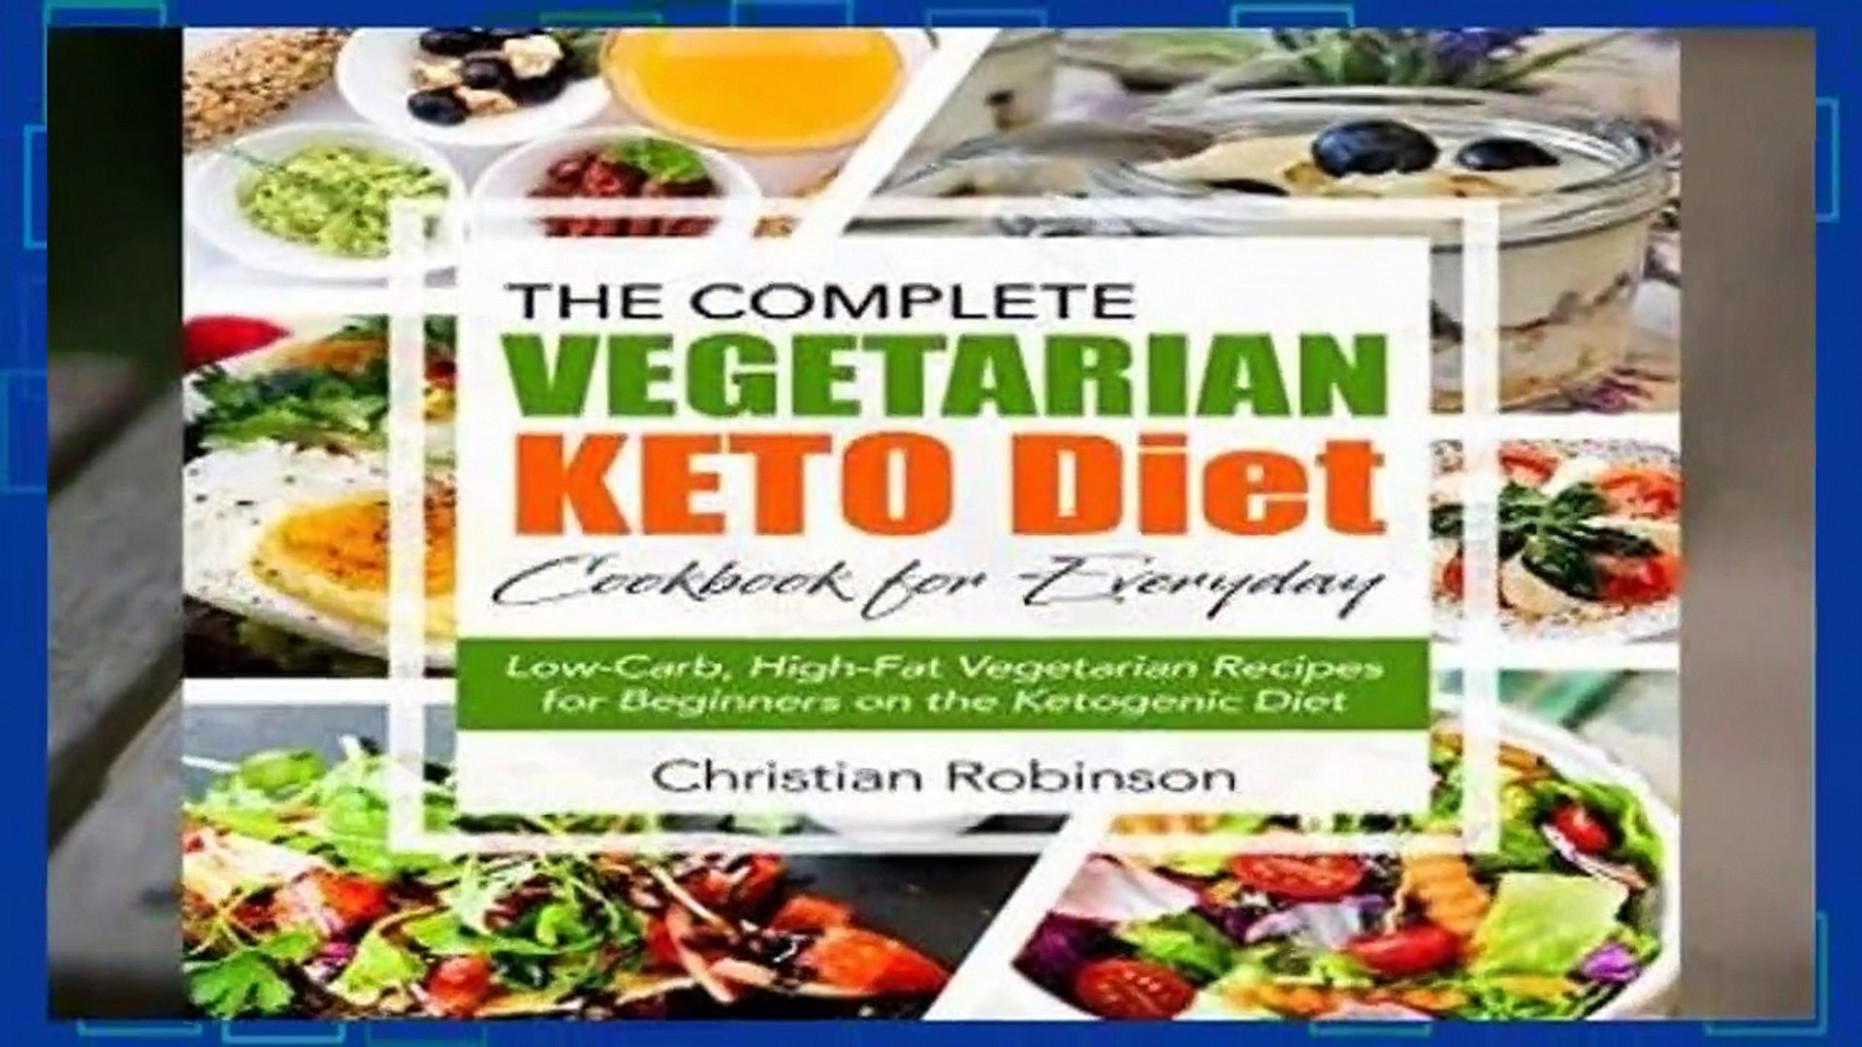 About For Books Keto Diet Cookbook: The Complete Vegetarian Keto Diet  Cookbook for Everyday | - keto diet recipes vegetarian